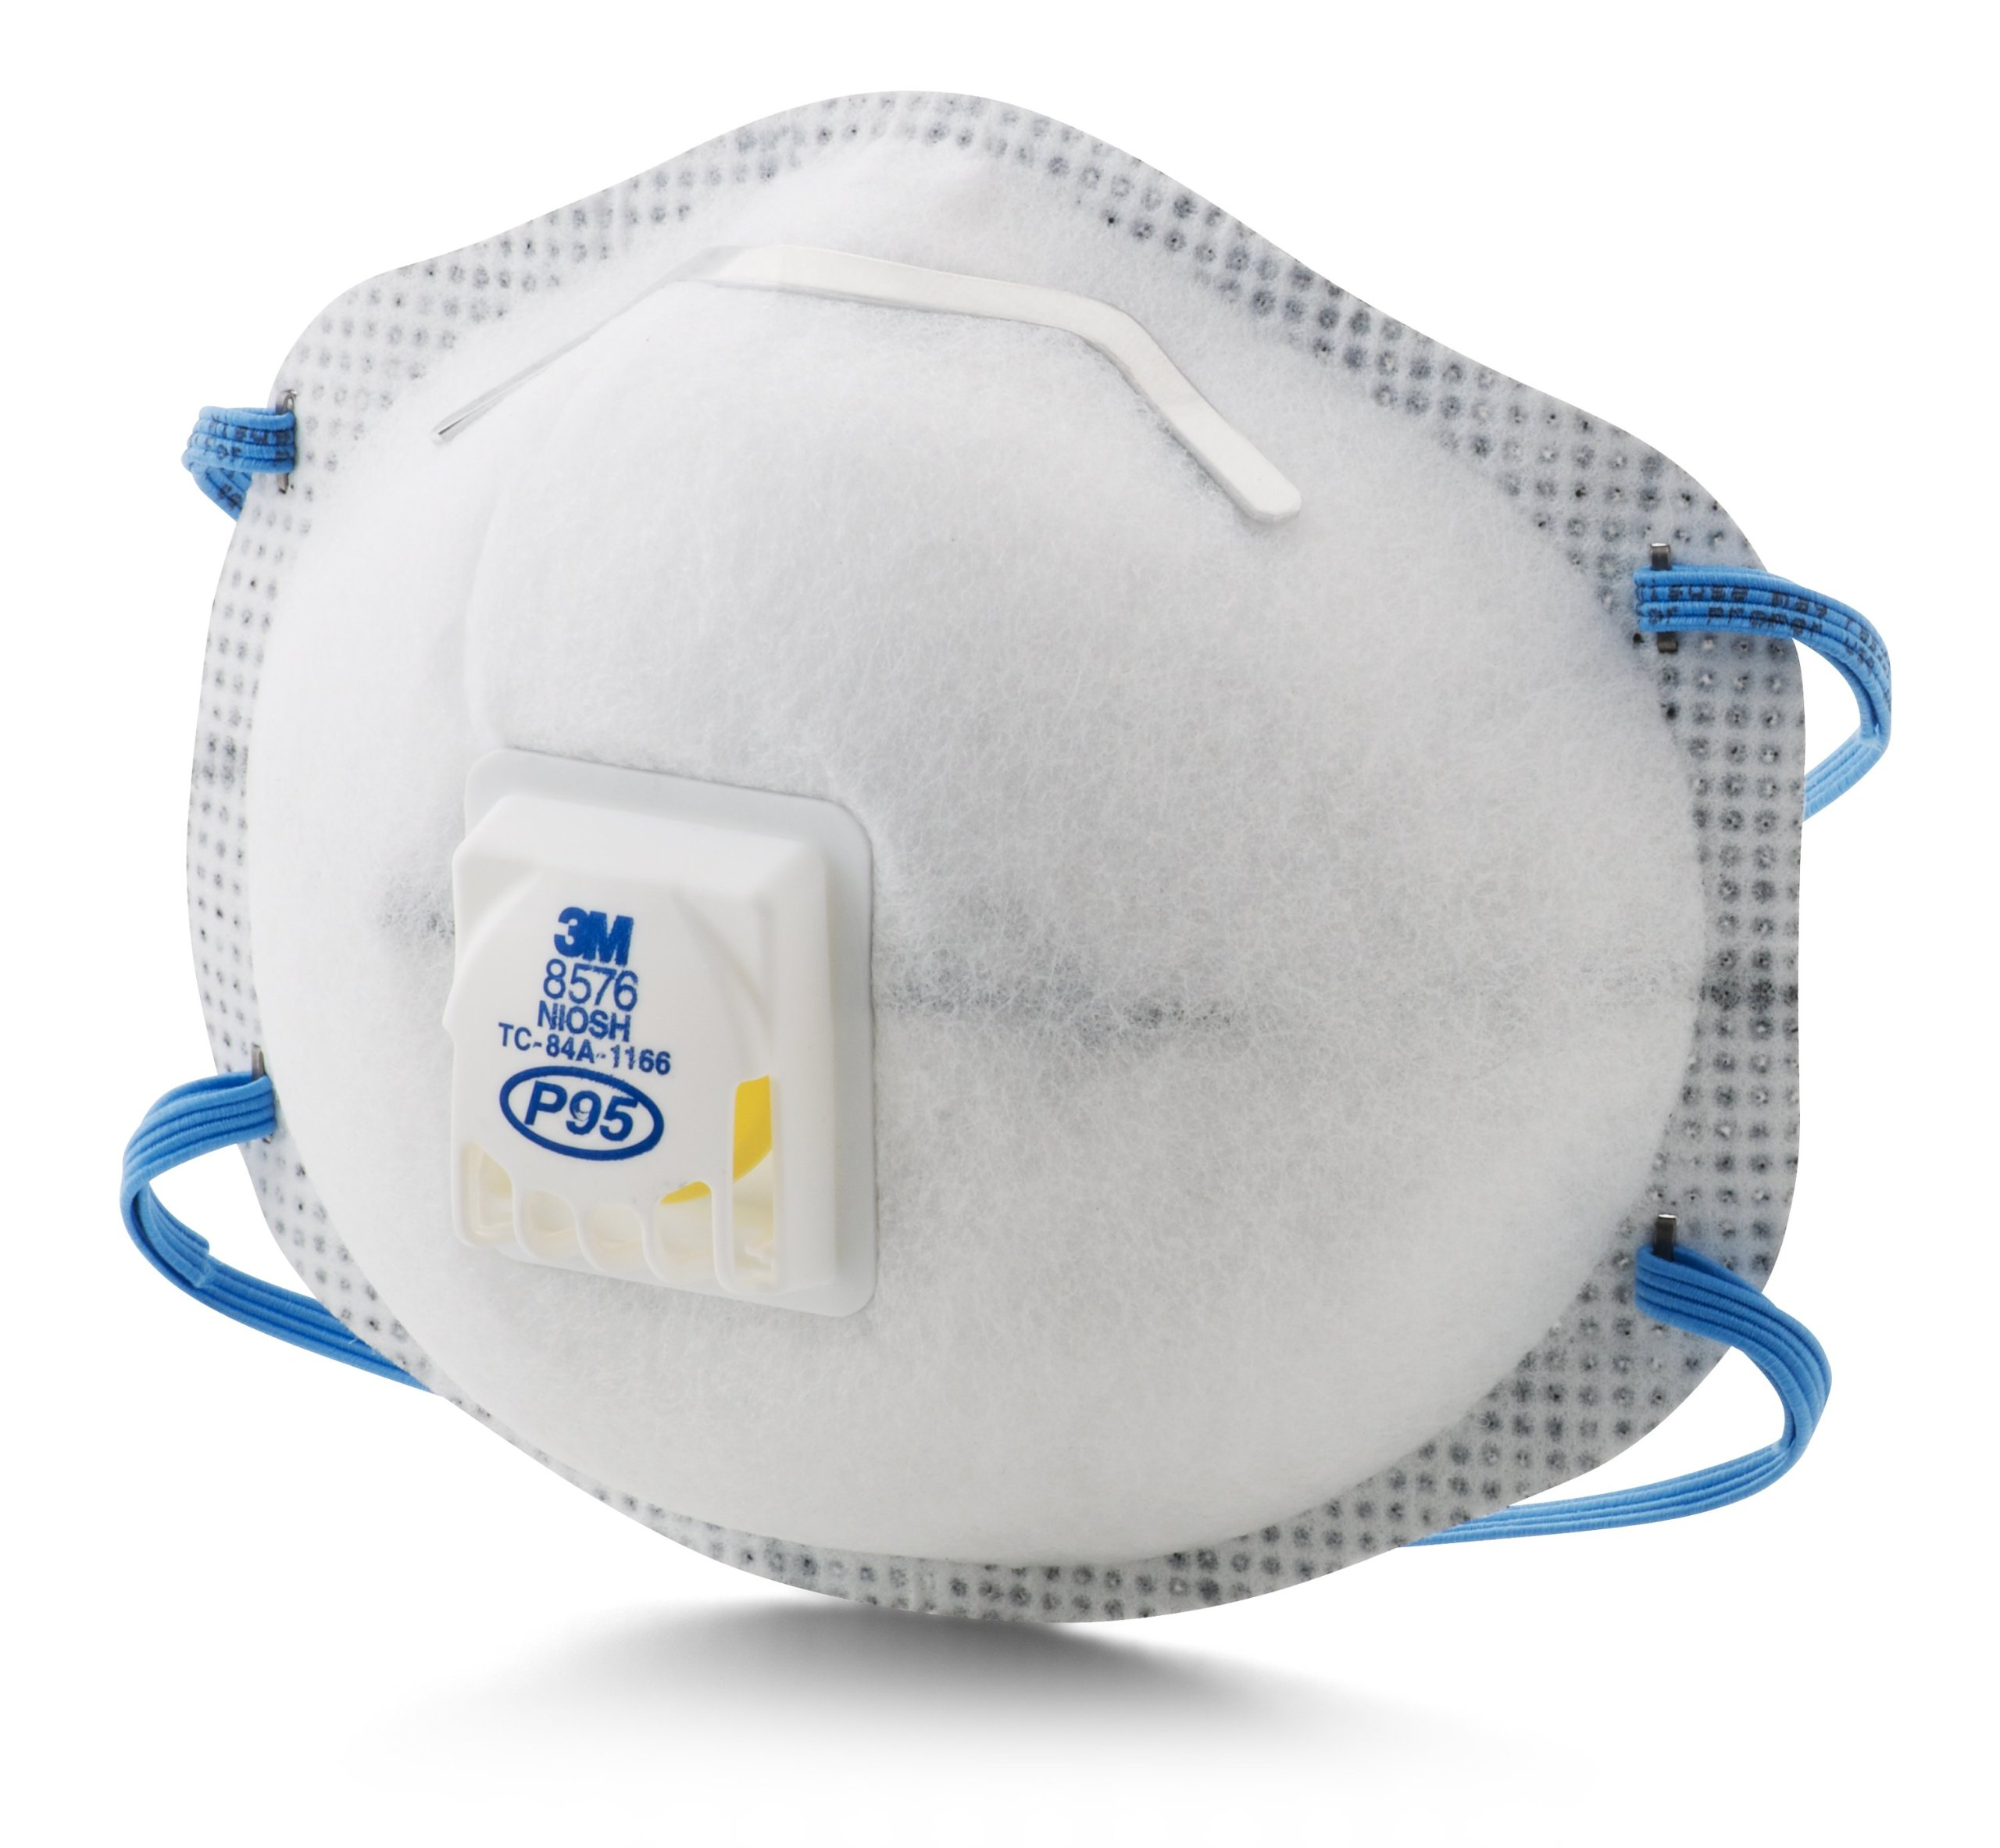 3M Particulate Respirator 8576, P95, with Nuisance Level Acid Gas Relief (Pack of 10)